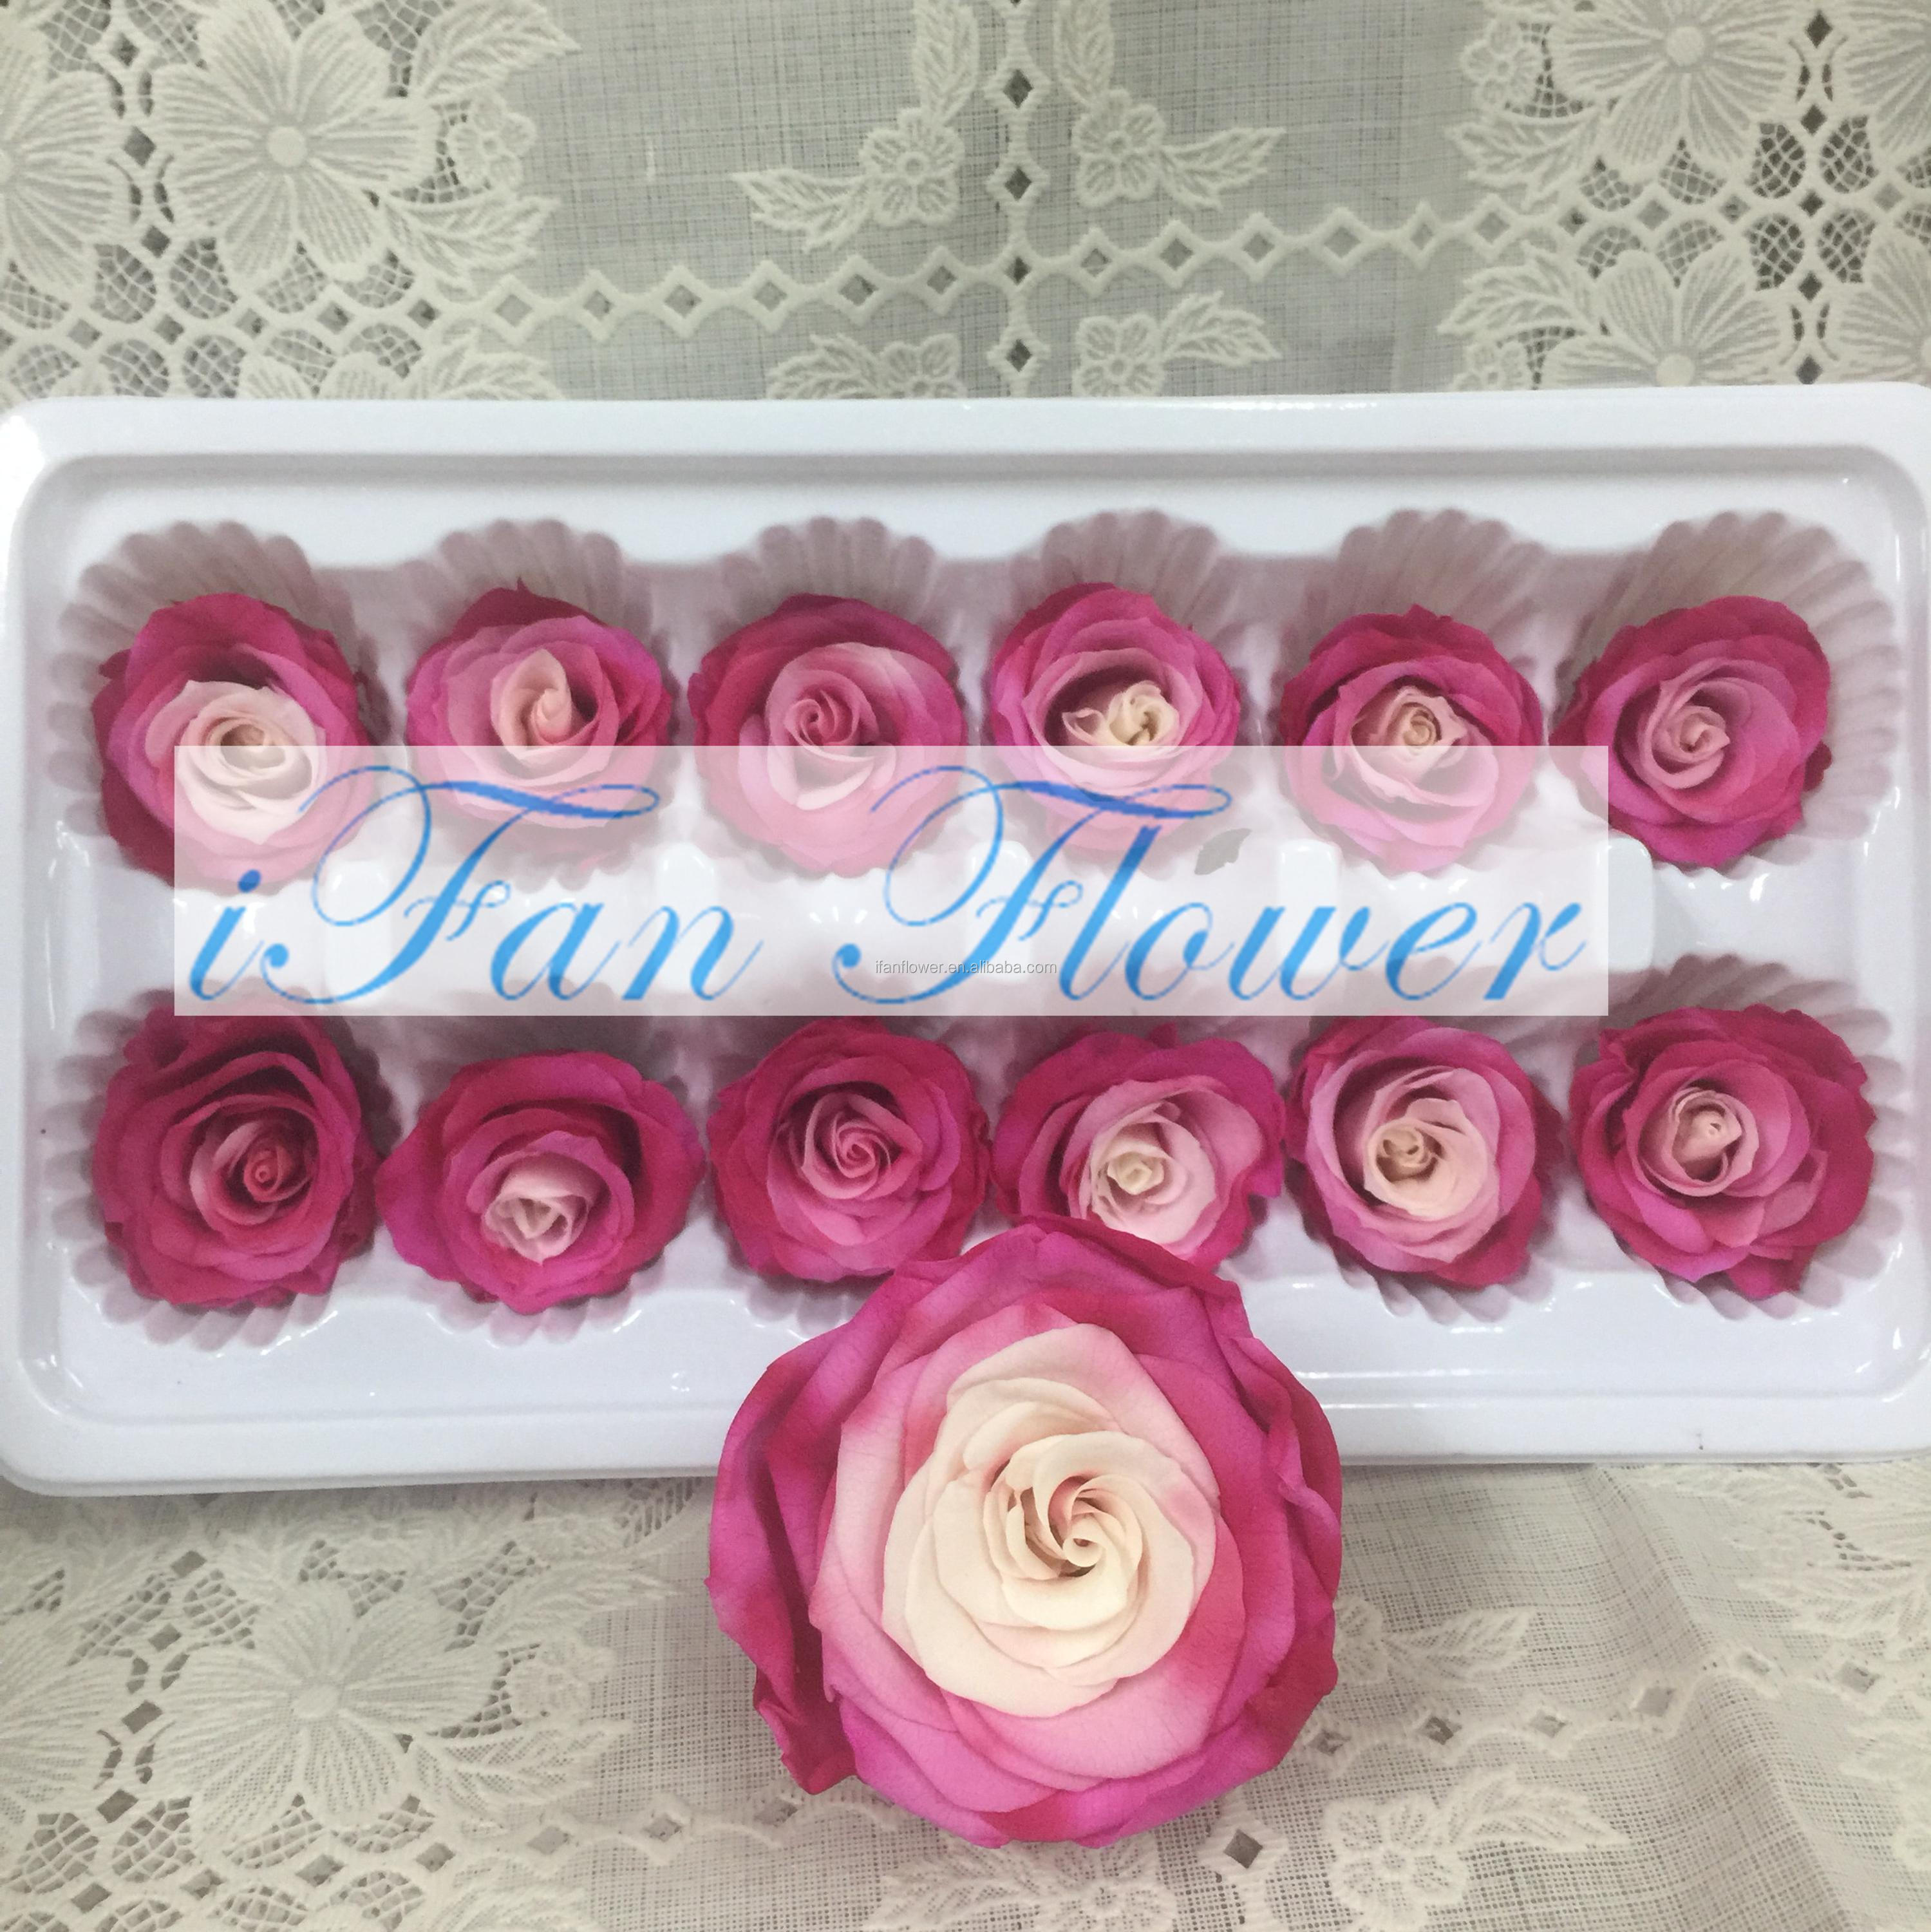 2017 New Arrival forever rose in glass with cheapest price preserved rose head